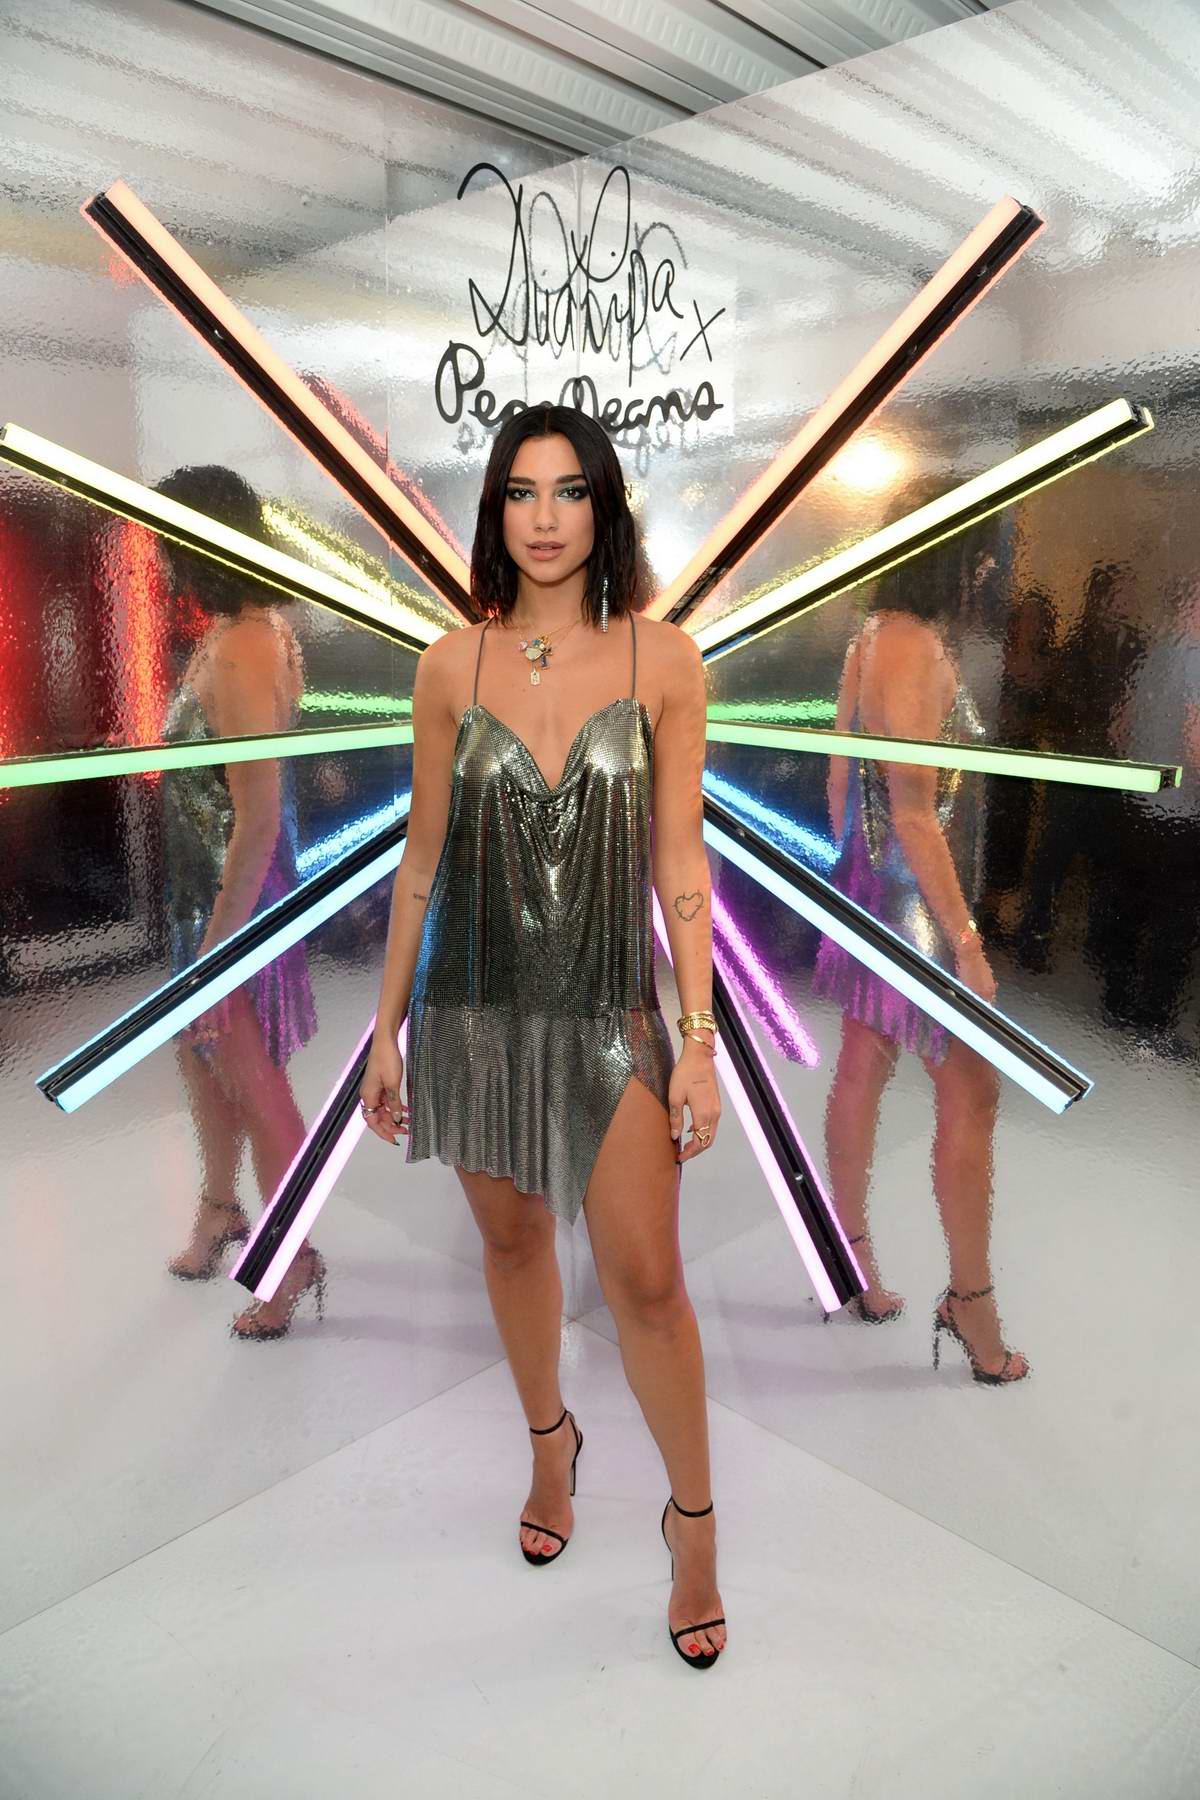 Dua Lipa attends the Dua for Pepe official collection launch in London, UK